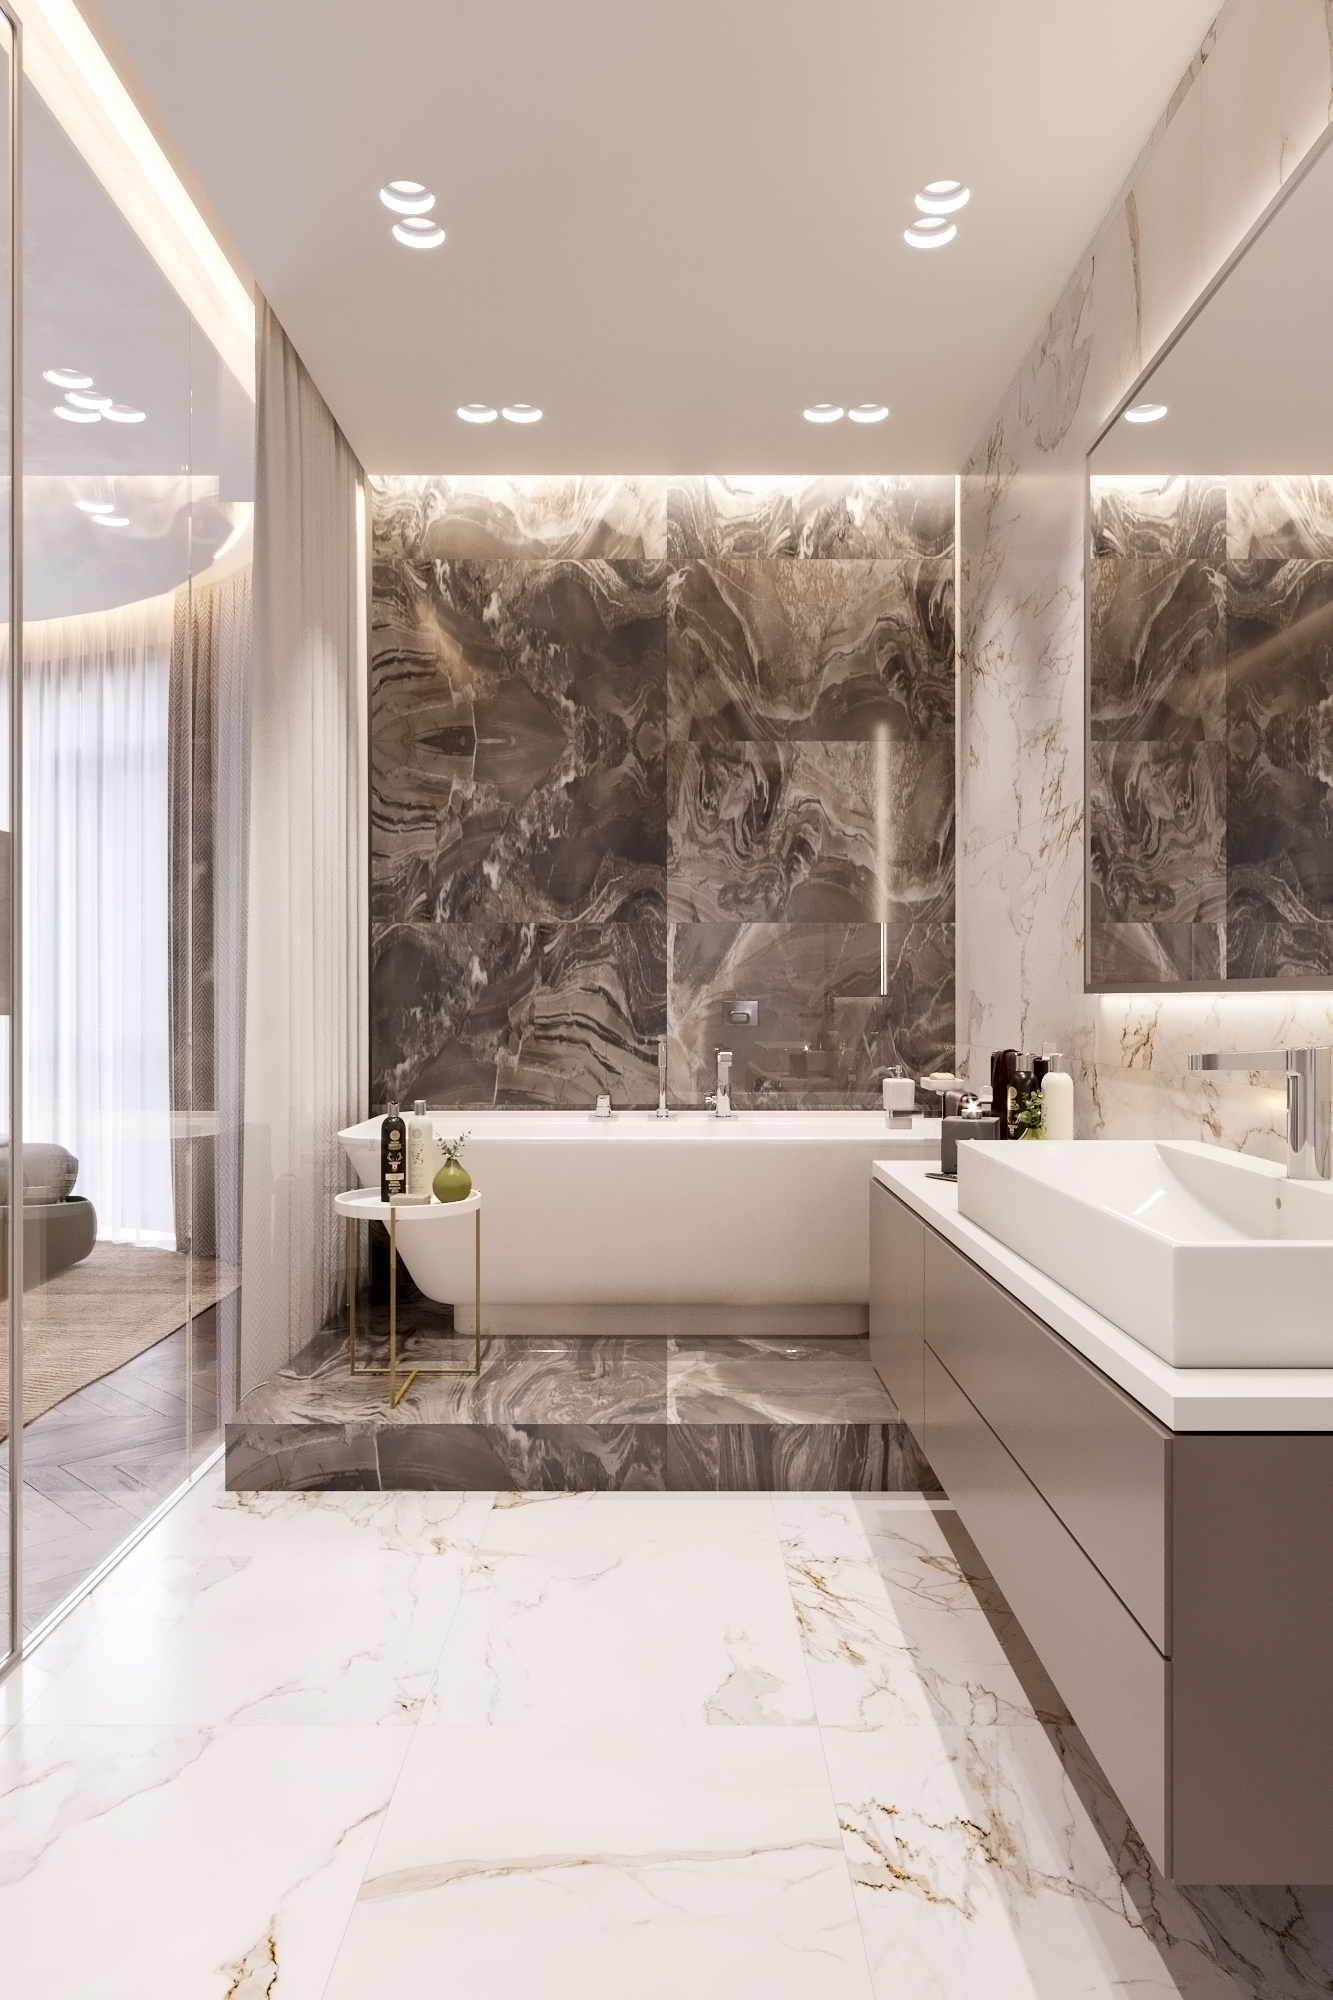 Working On A Bathroom Project We Can Help You With Some Marble Inspirations Discover Mor Bathroom Inspiration Modern Bathroom Design Luxury Bathroom Interior